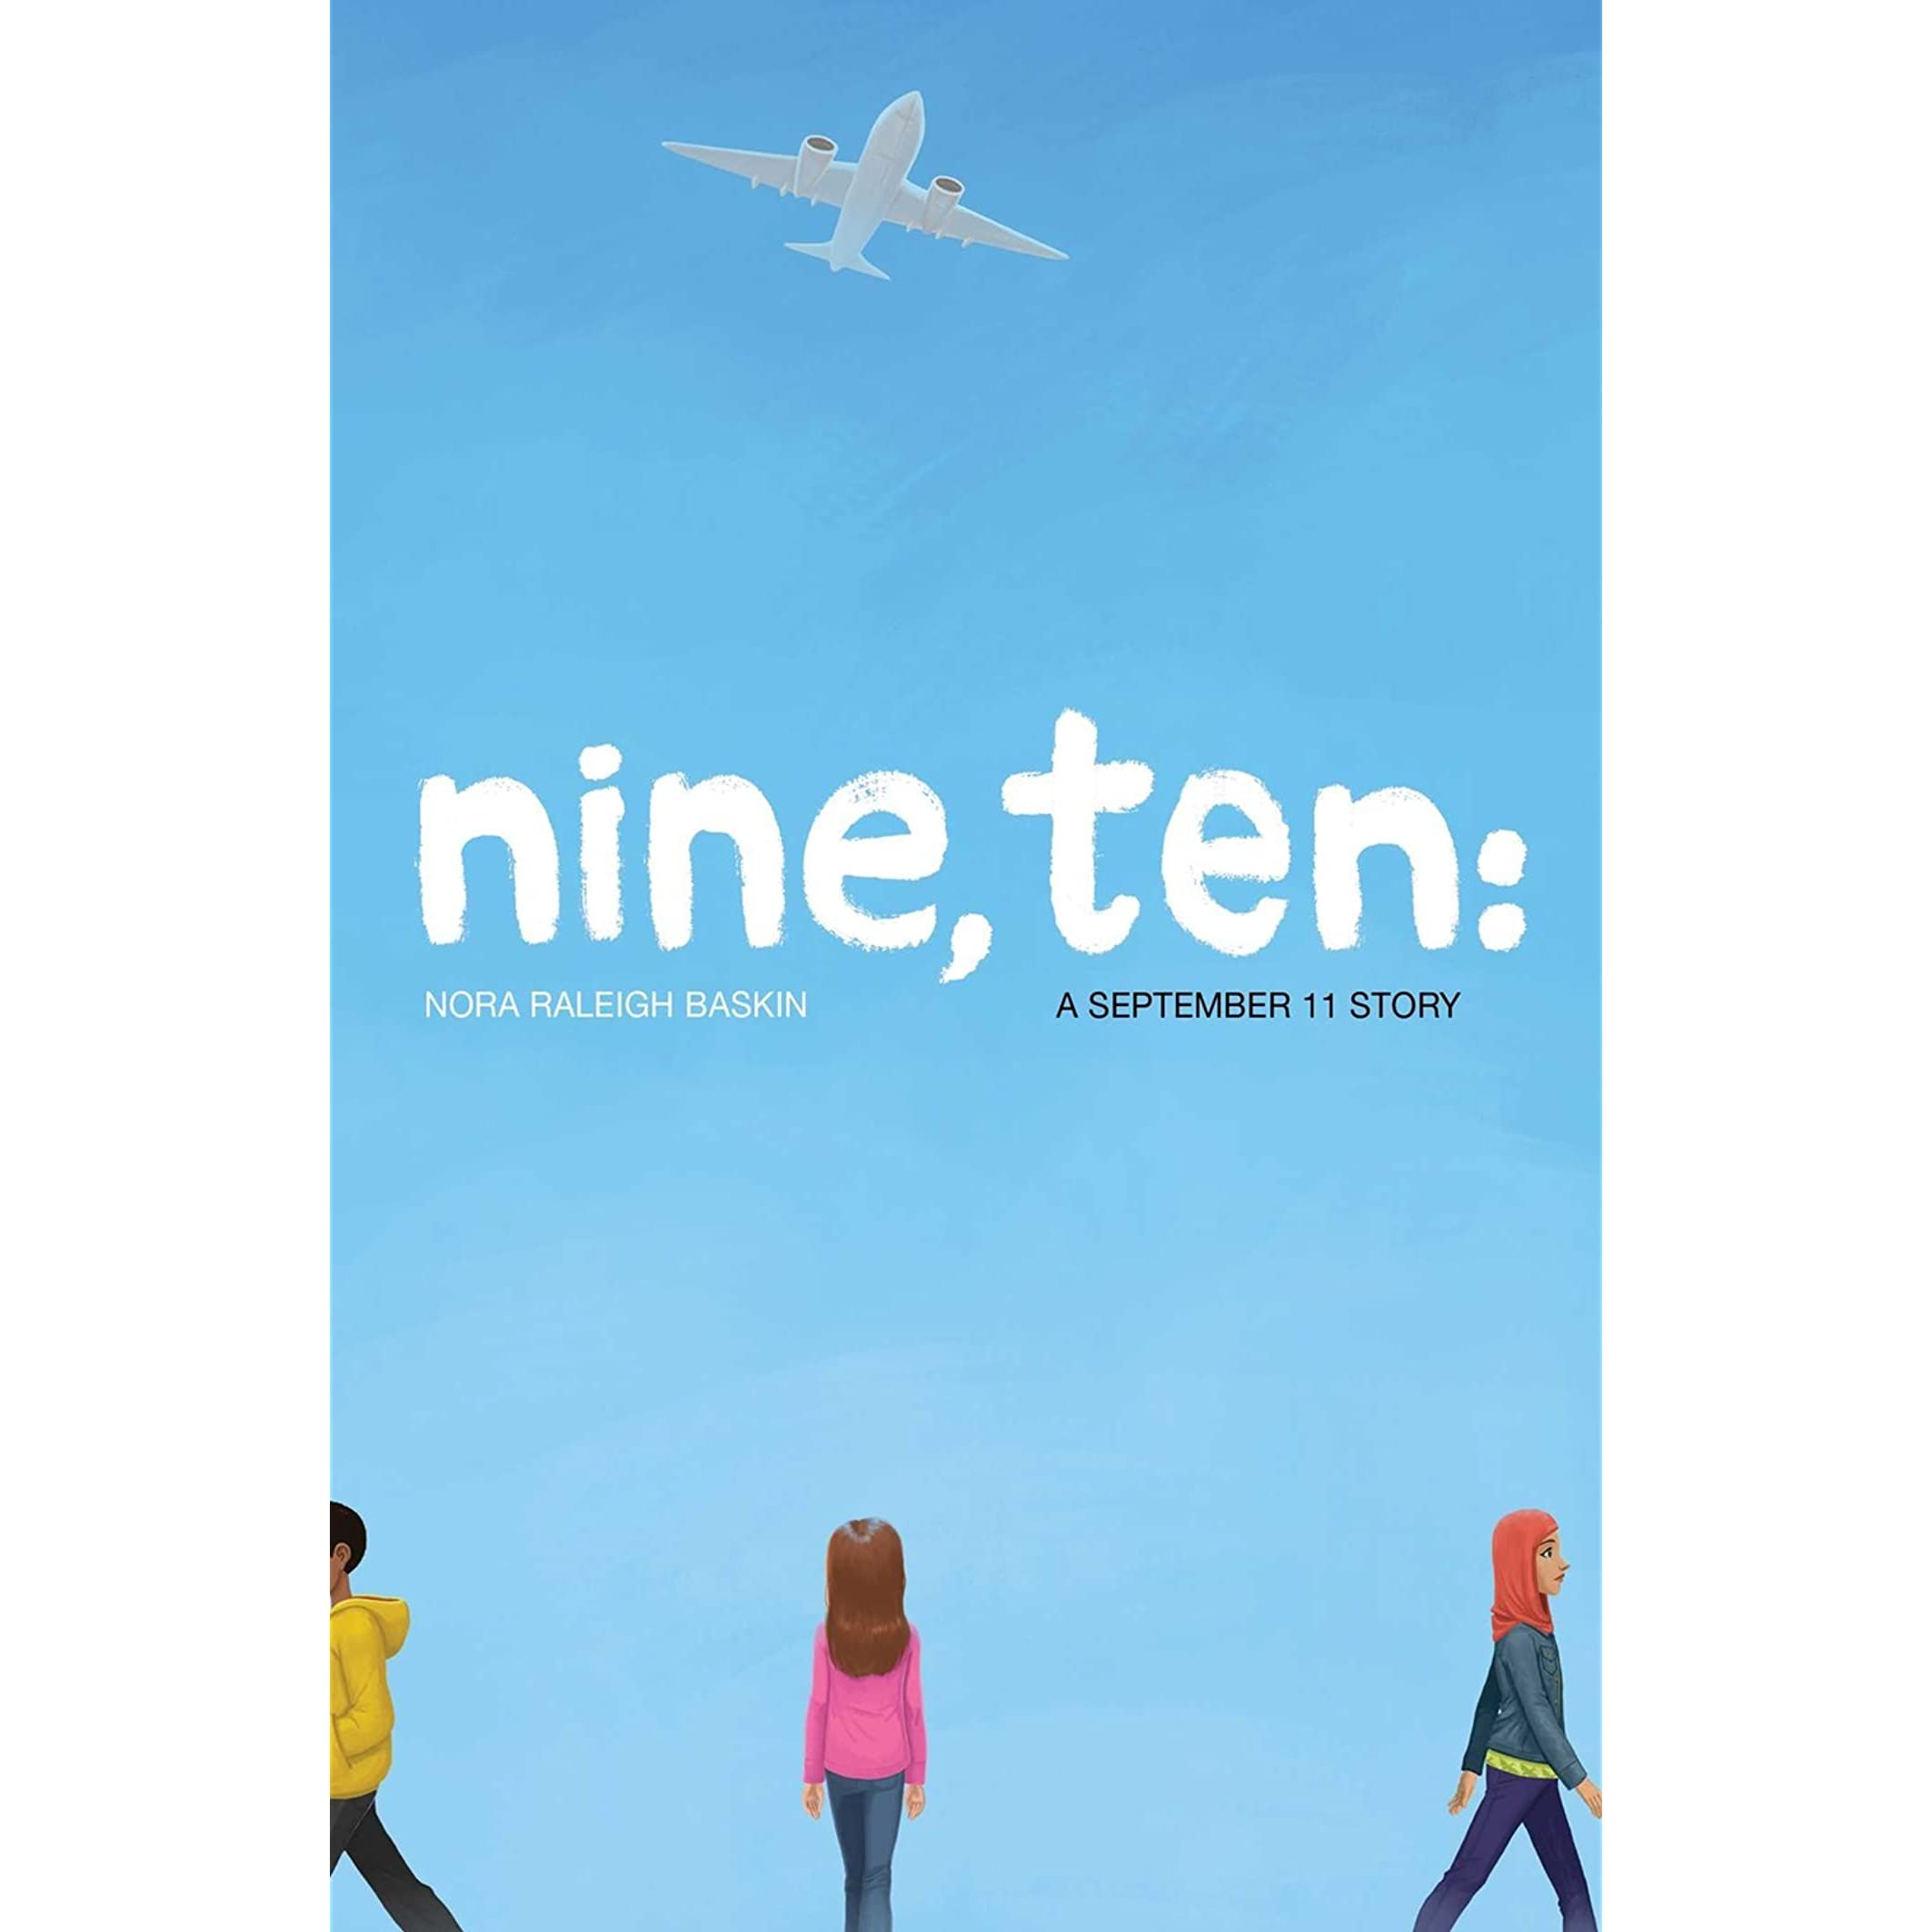 Nine, Ten: A September 11 Story by Nora Raleigh Baskin